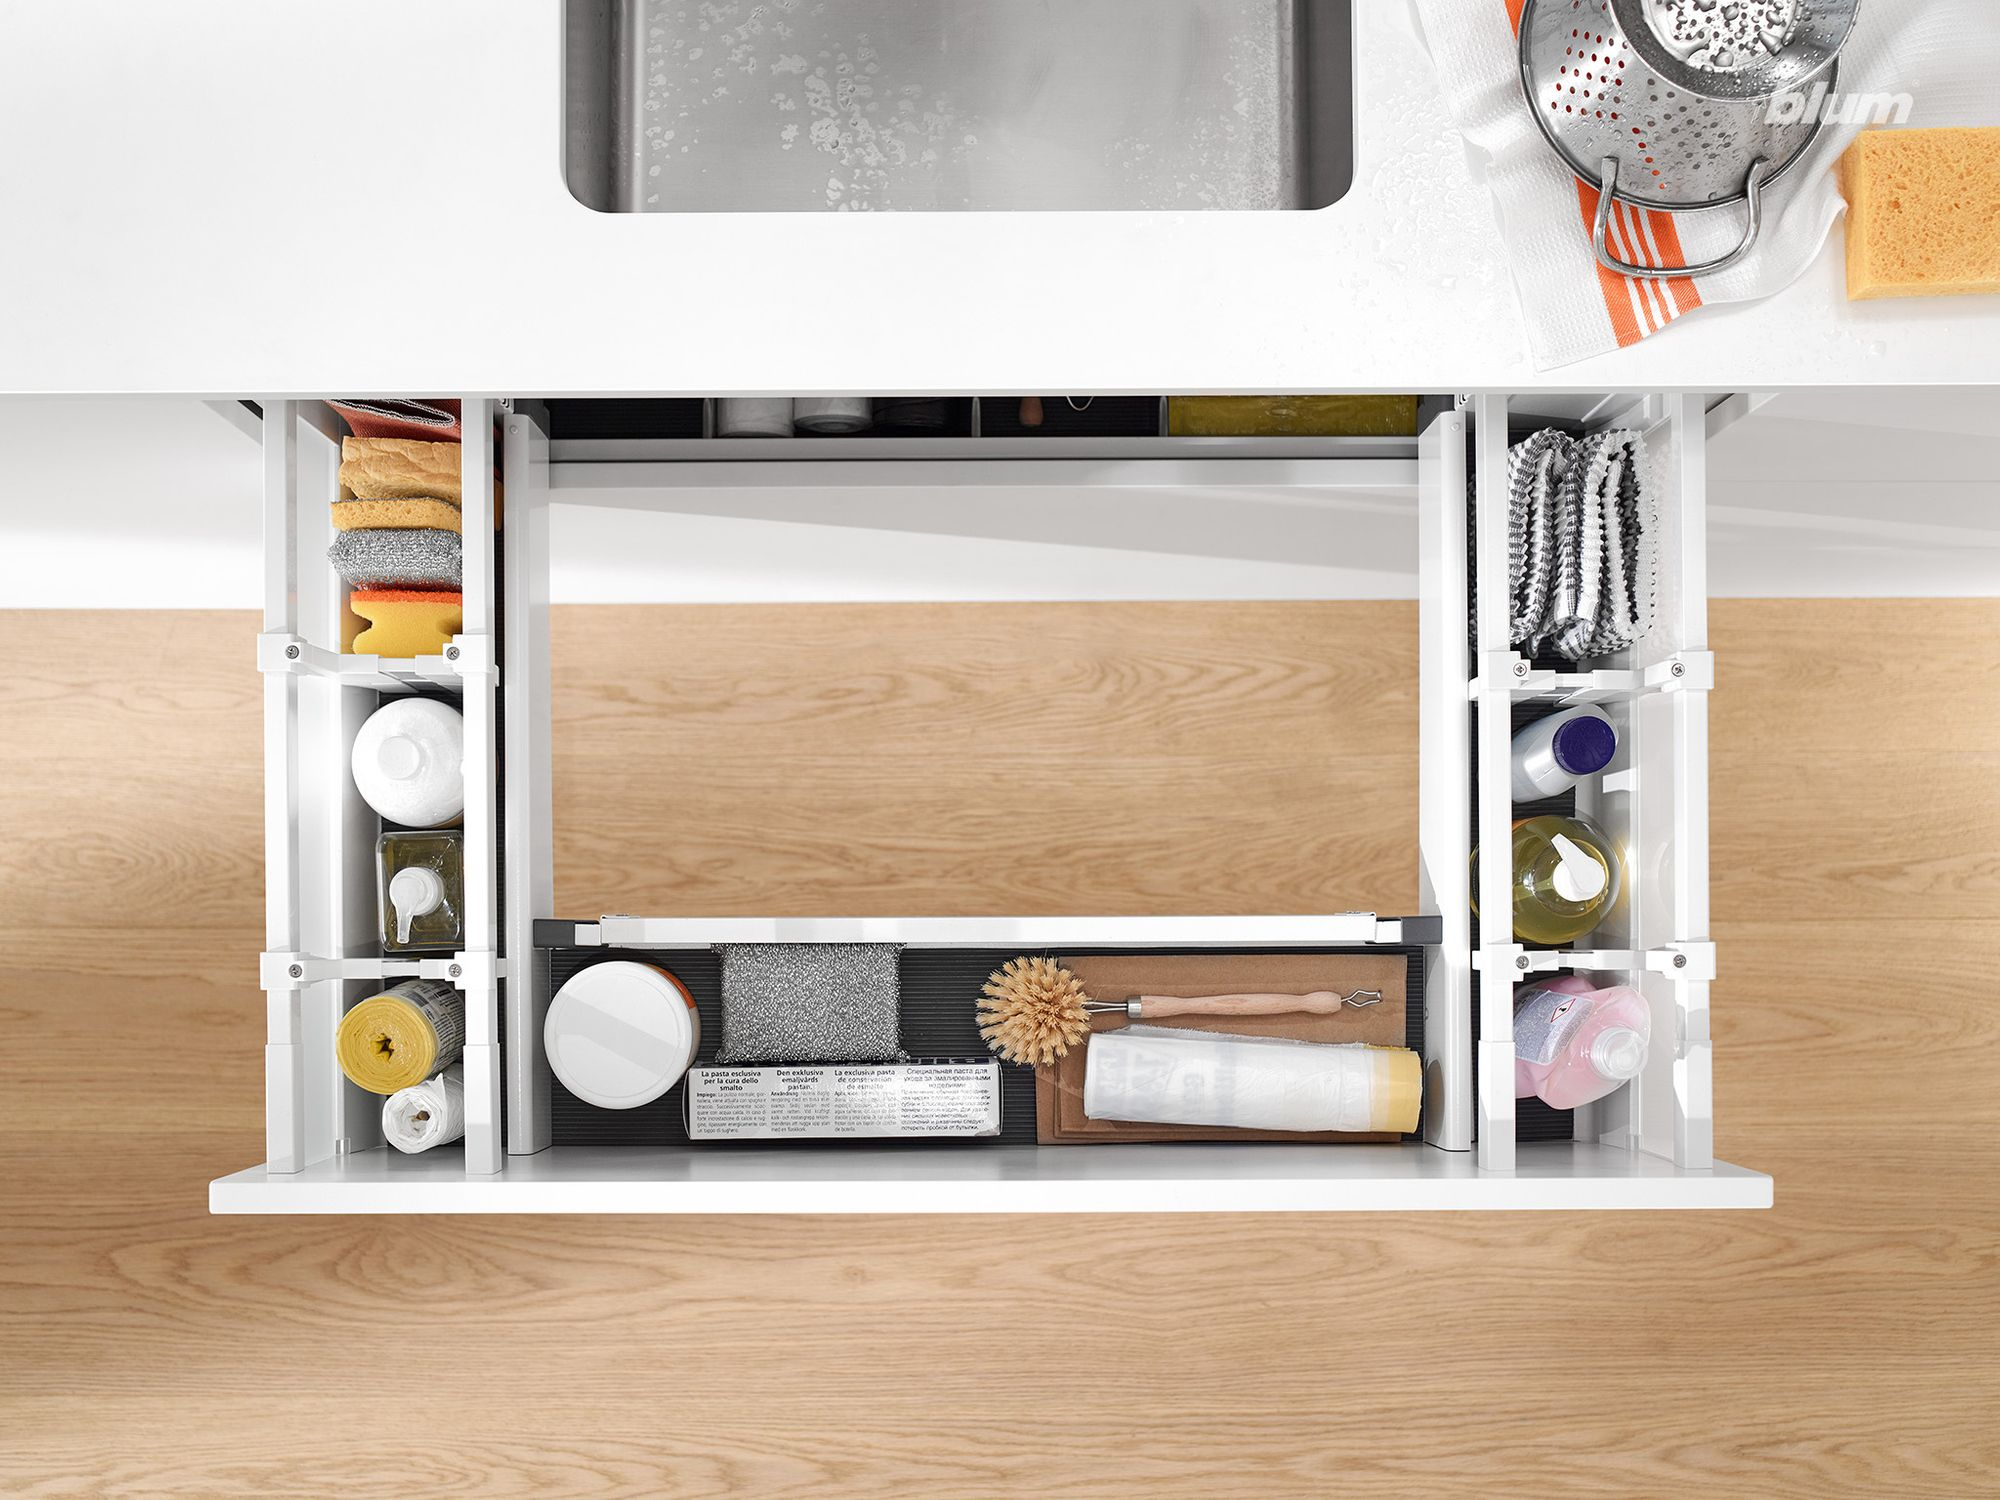 Clever AroundSink Storage Drawer. Make the most of every